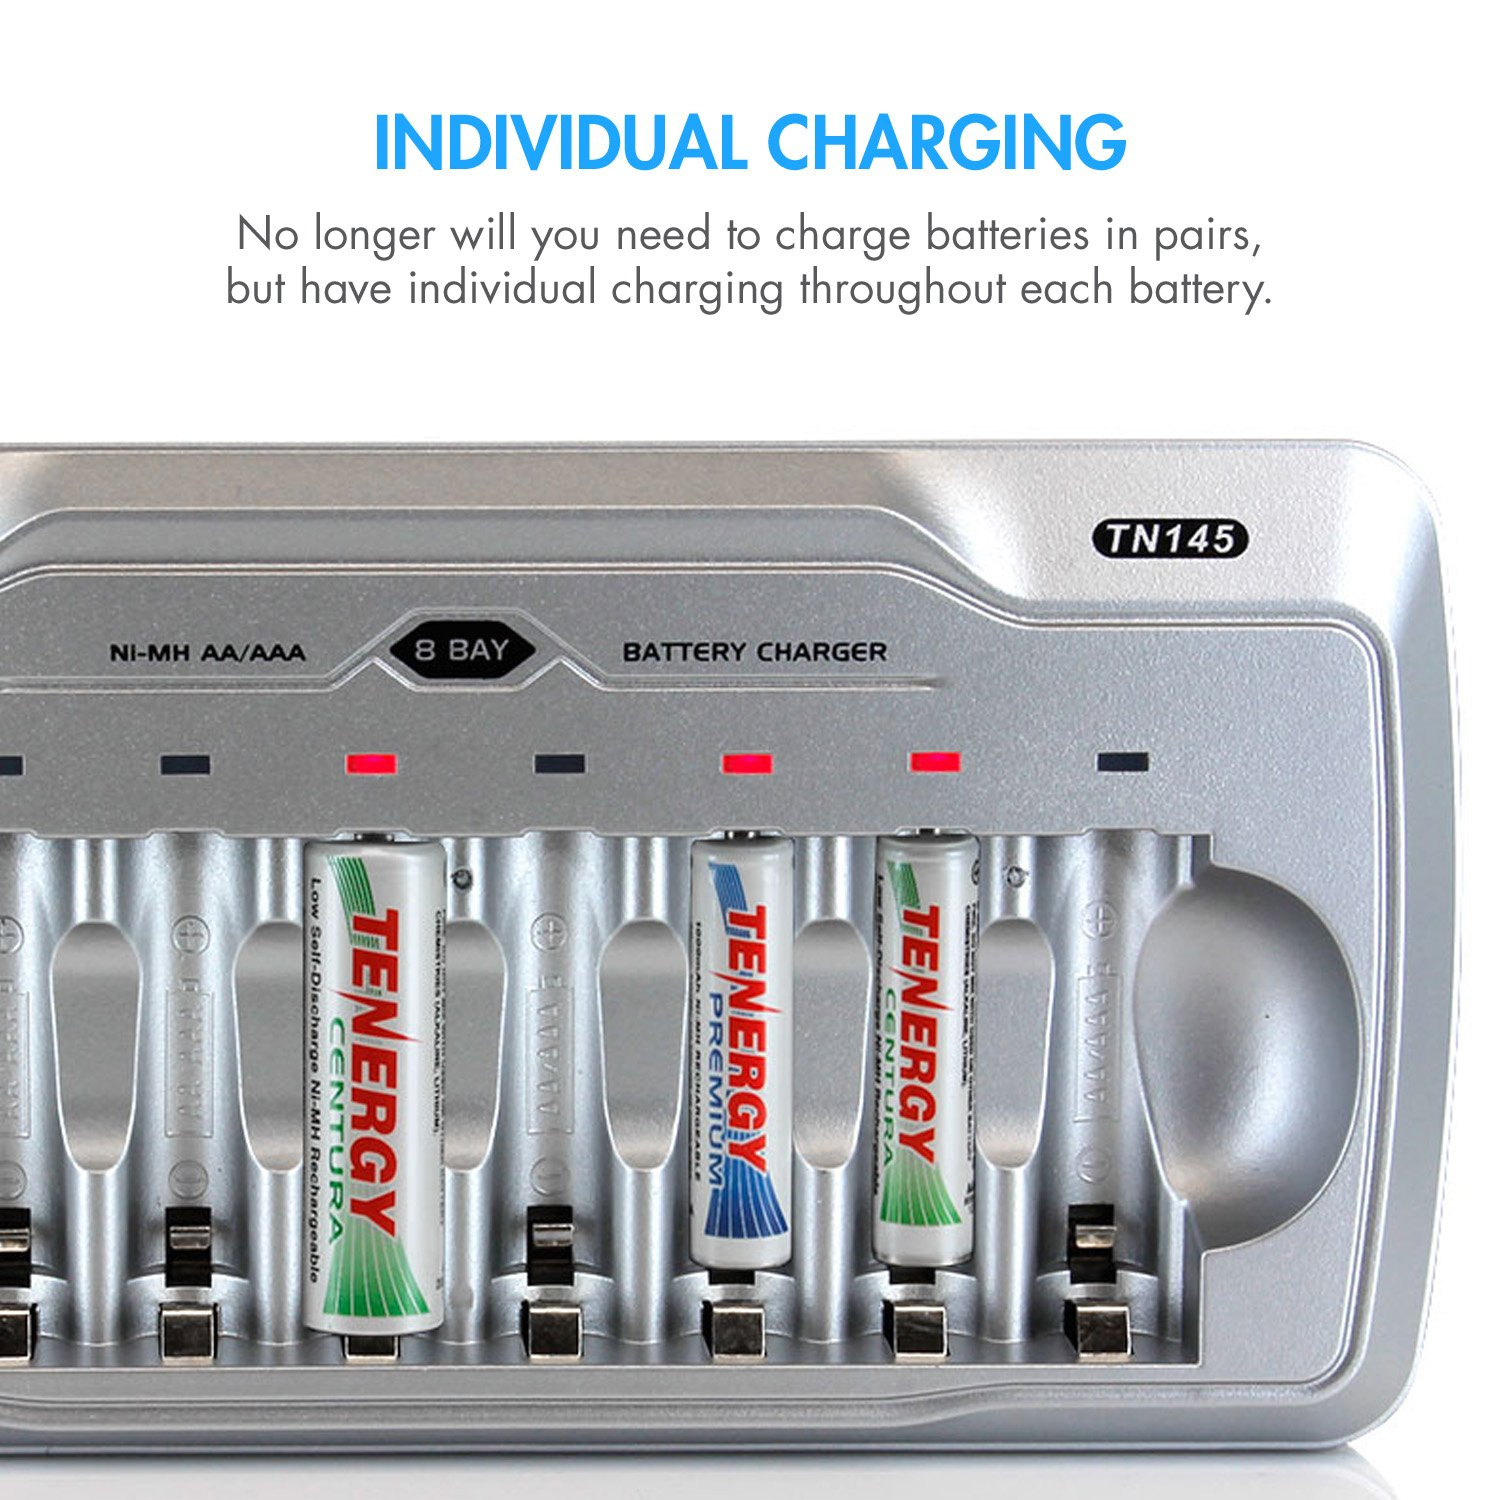 Tenergy Tn145 Aa Aaa Battery Charger 8 Slot Household Simple Nicd Electronic Circuits Cell With Individual Bays And Led Indicators